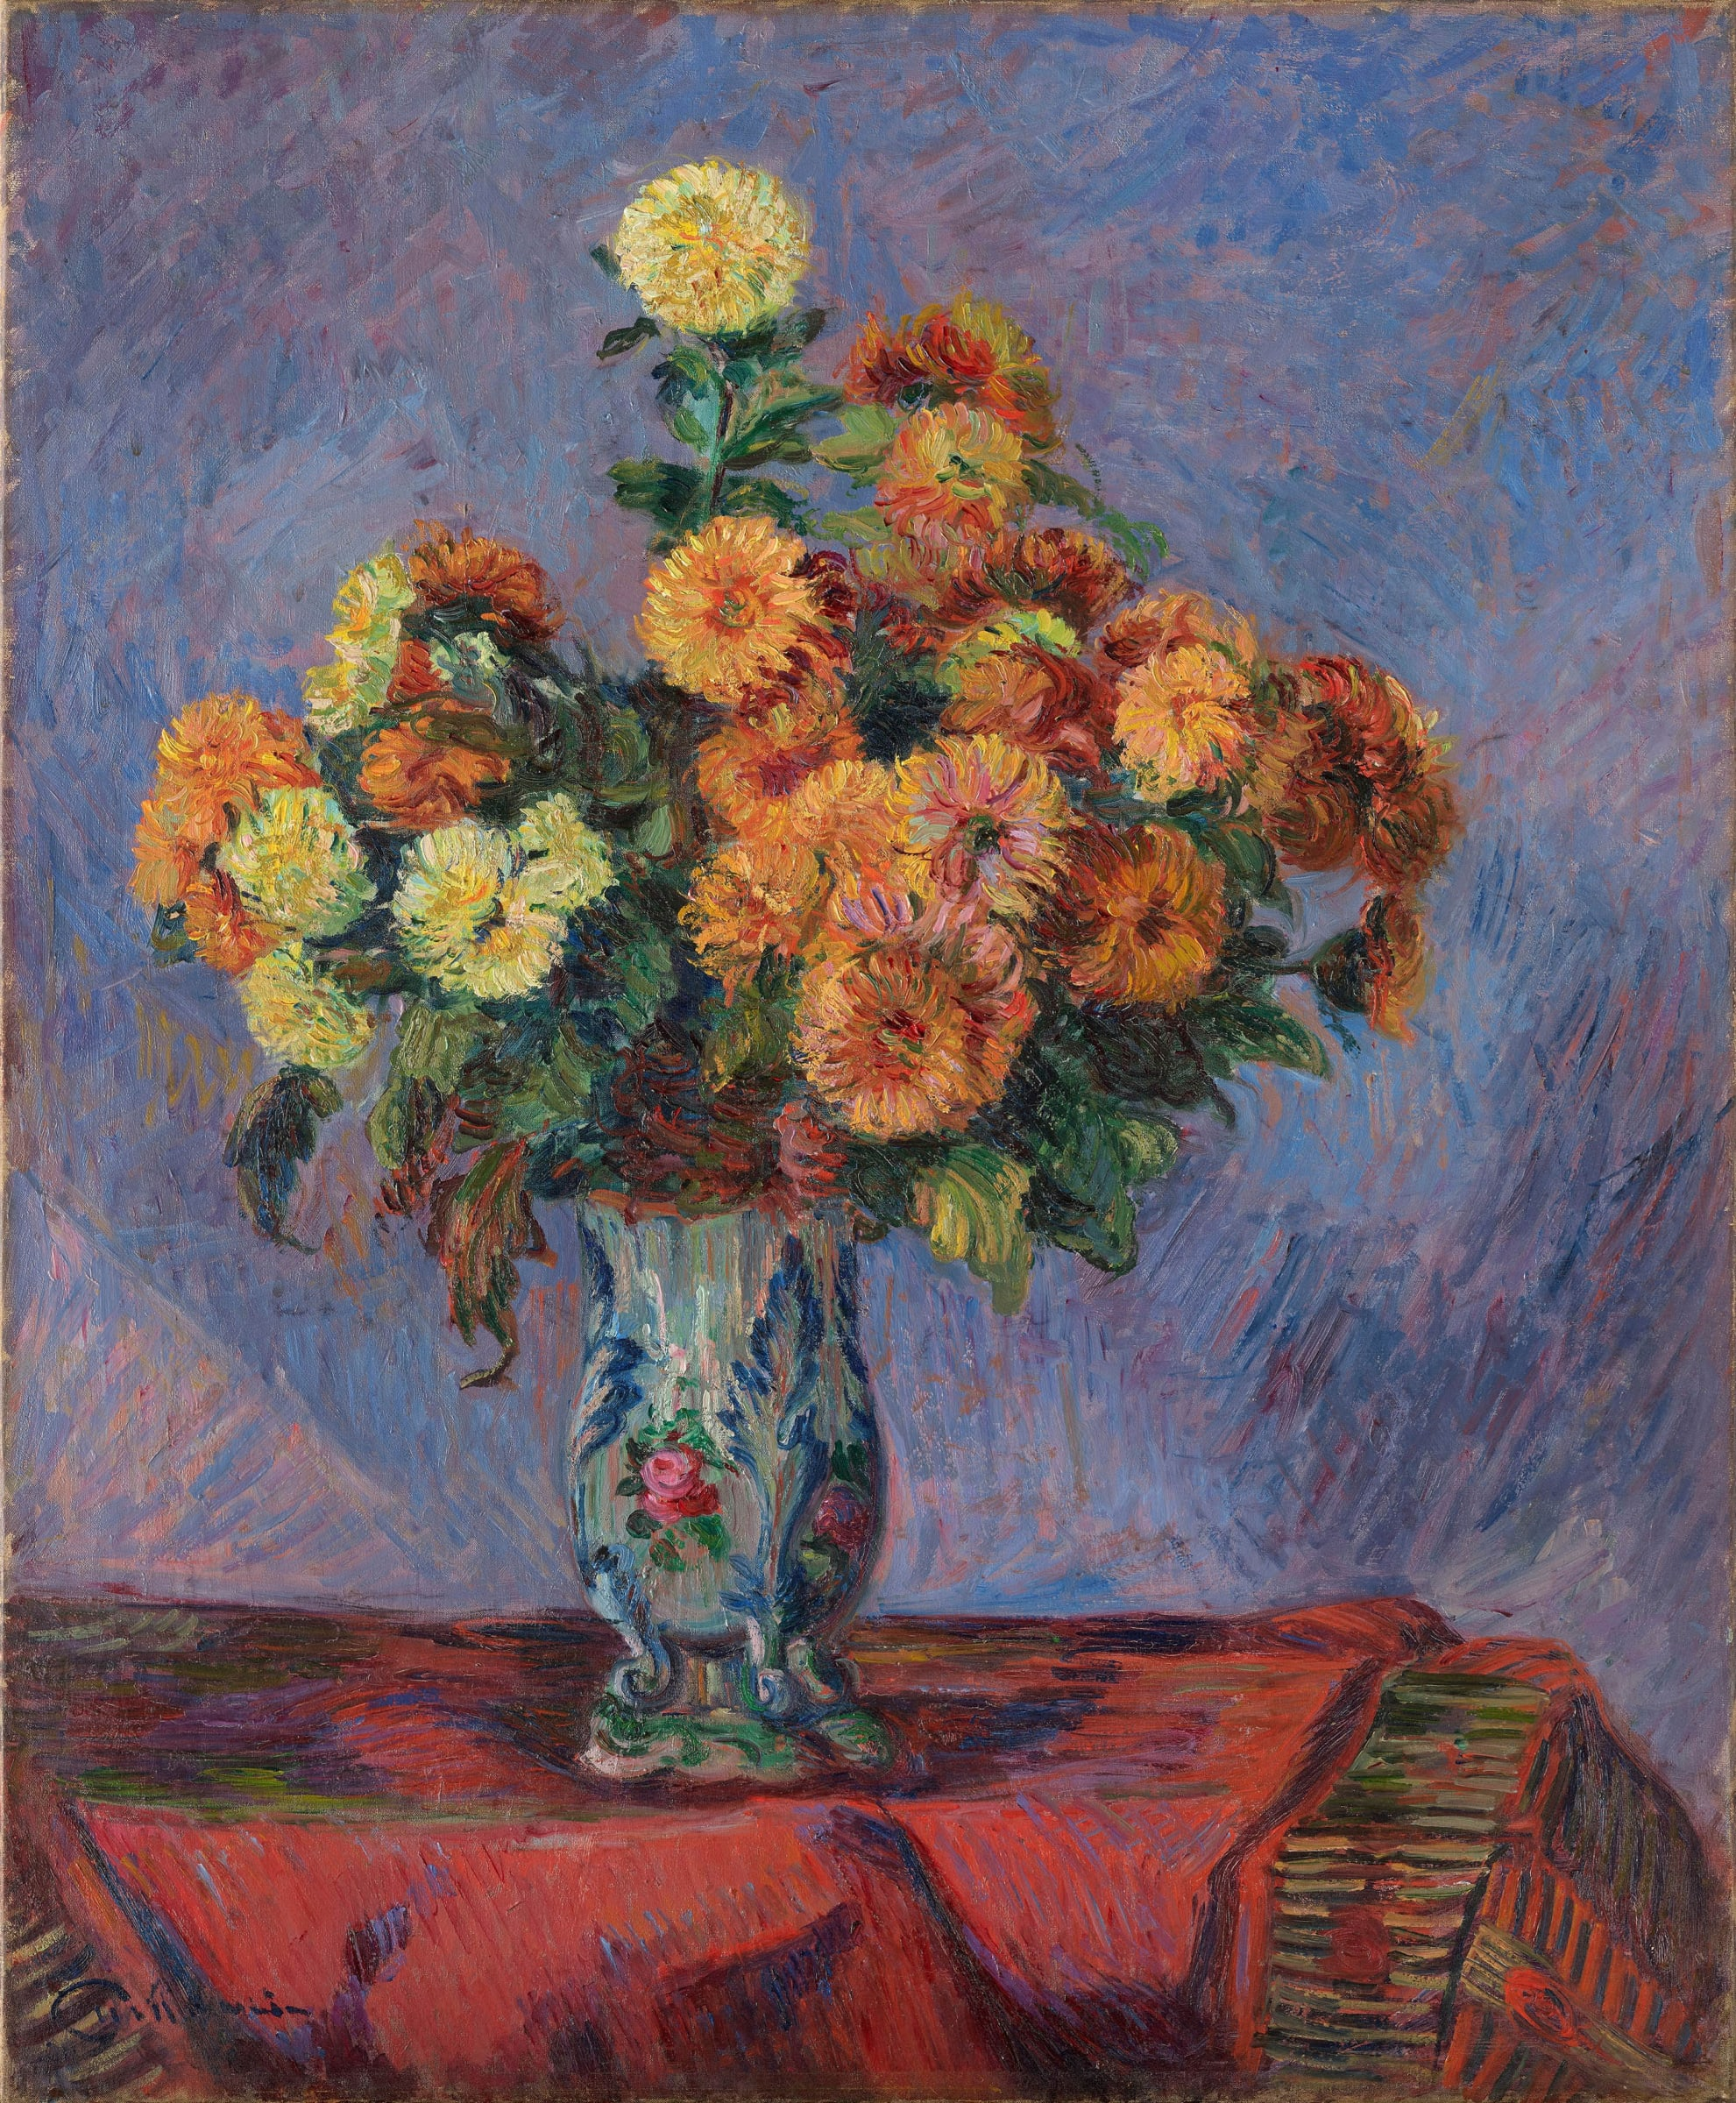 "<span class=""link fancybox-details-link""><a href=""/artists/45-armand-guillaumin/works/9467-armand-guillaumin-bouquet-de-fleurs-sur-une-table-c.1900/"">View Detail Page</a></span><div class=""artist""><span class=""artist""><strong>Armand Guillaumin</strong></span></div>